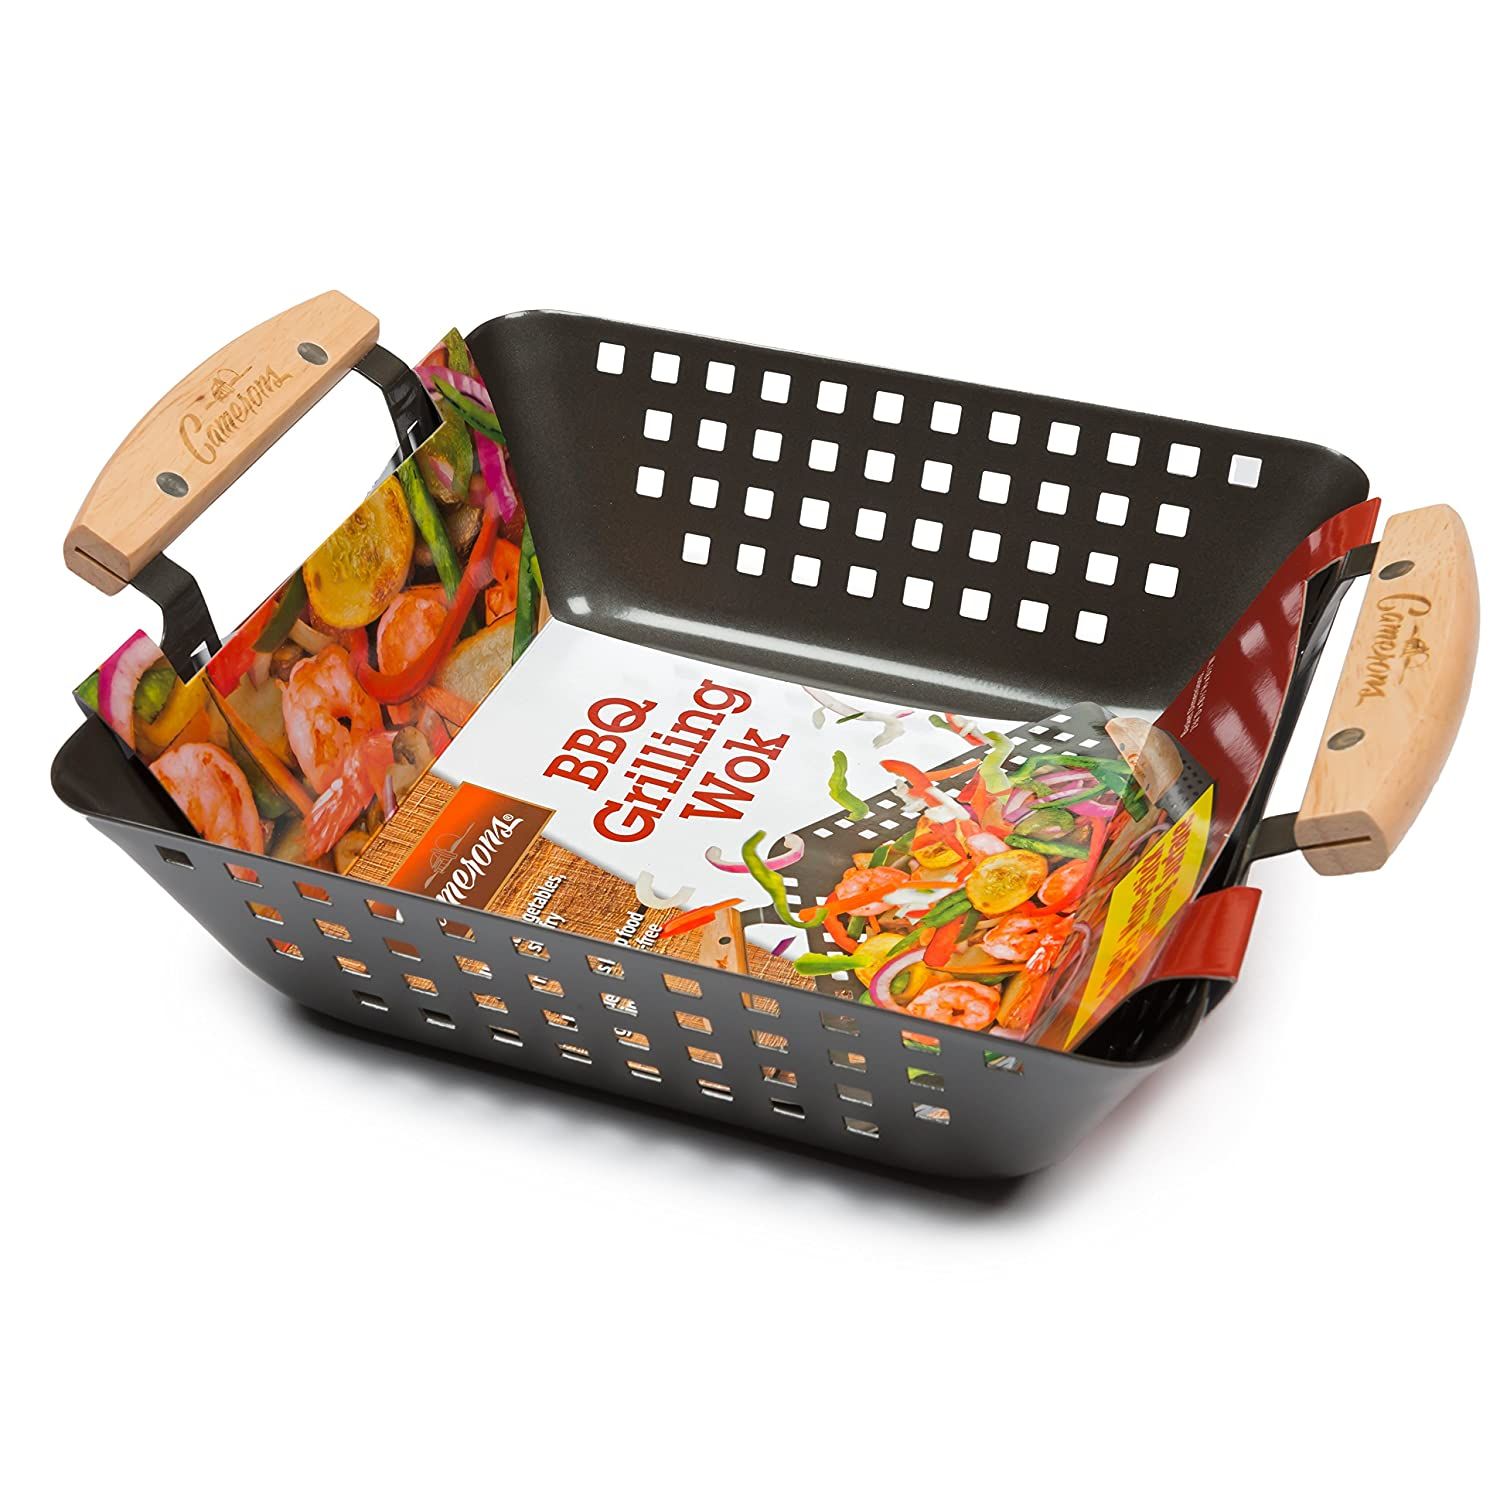 Grill Basket For Meat, Vegetables & Seafood